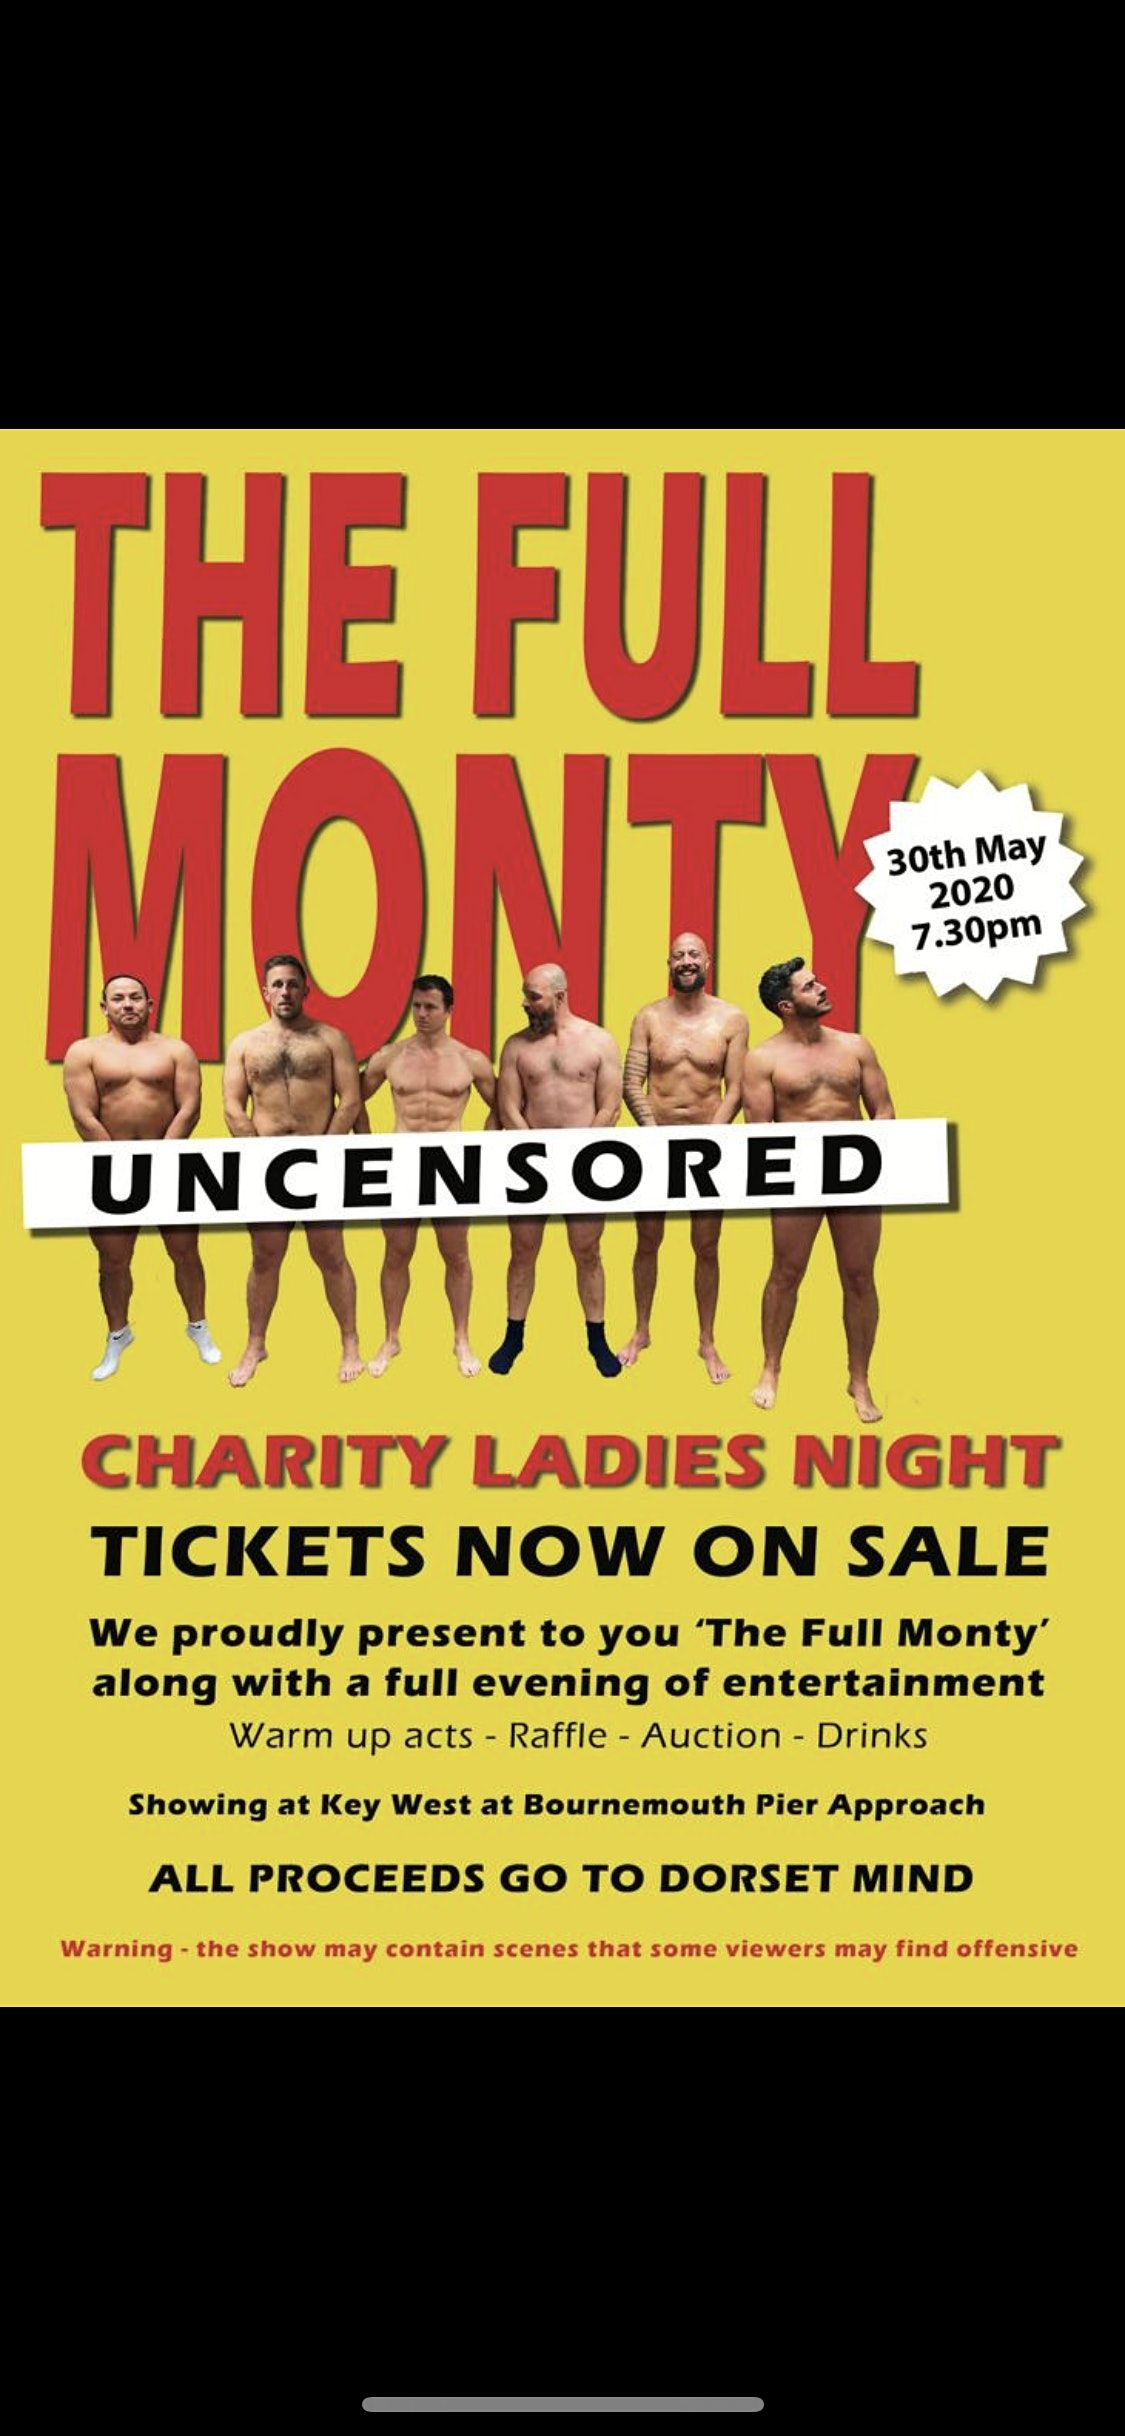 The Full Monty Charity Ladies Night, 27 March | Event in Bournemouth | AllEvents.in